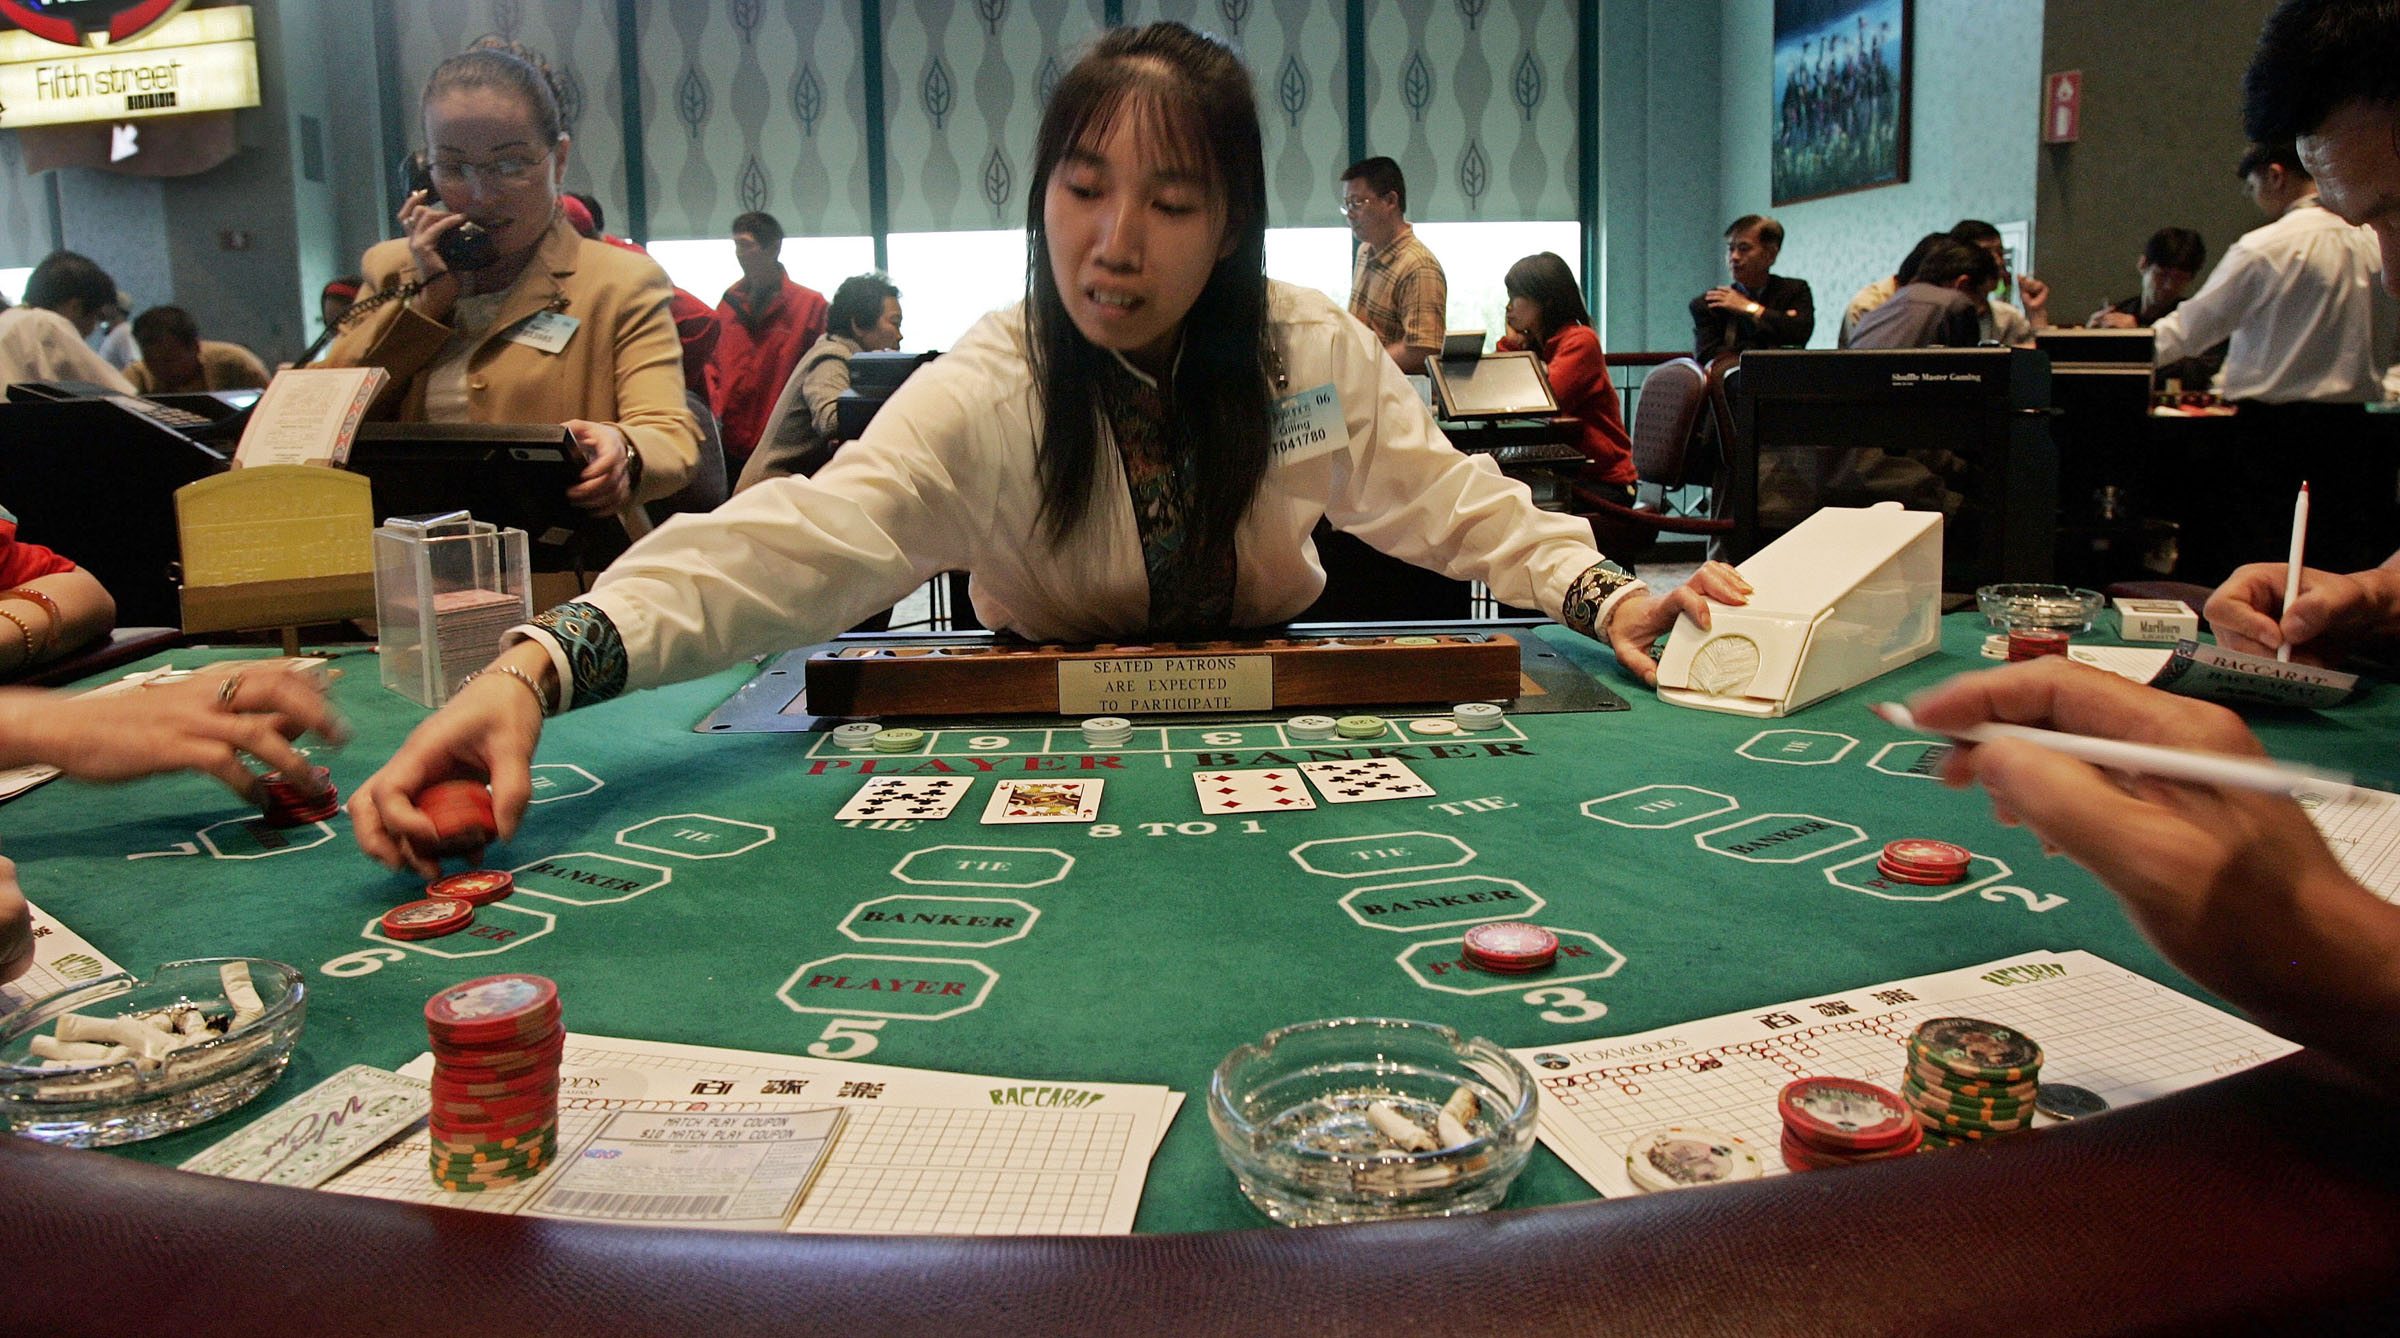 Have fun by playing most popular online casino games